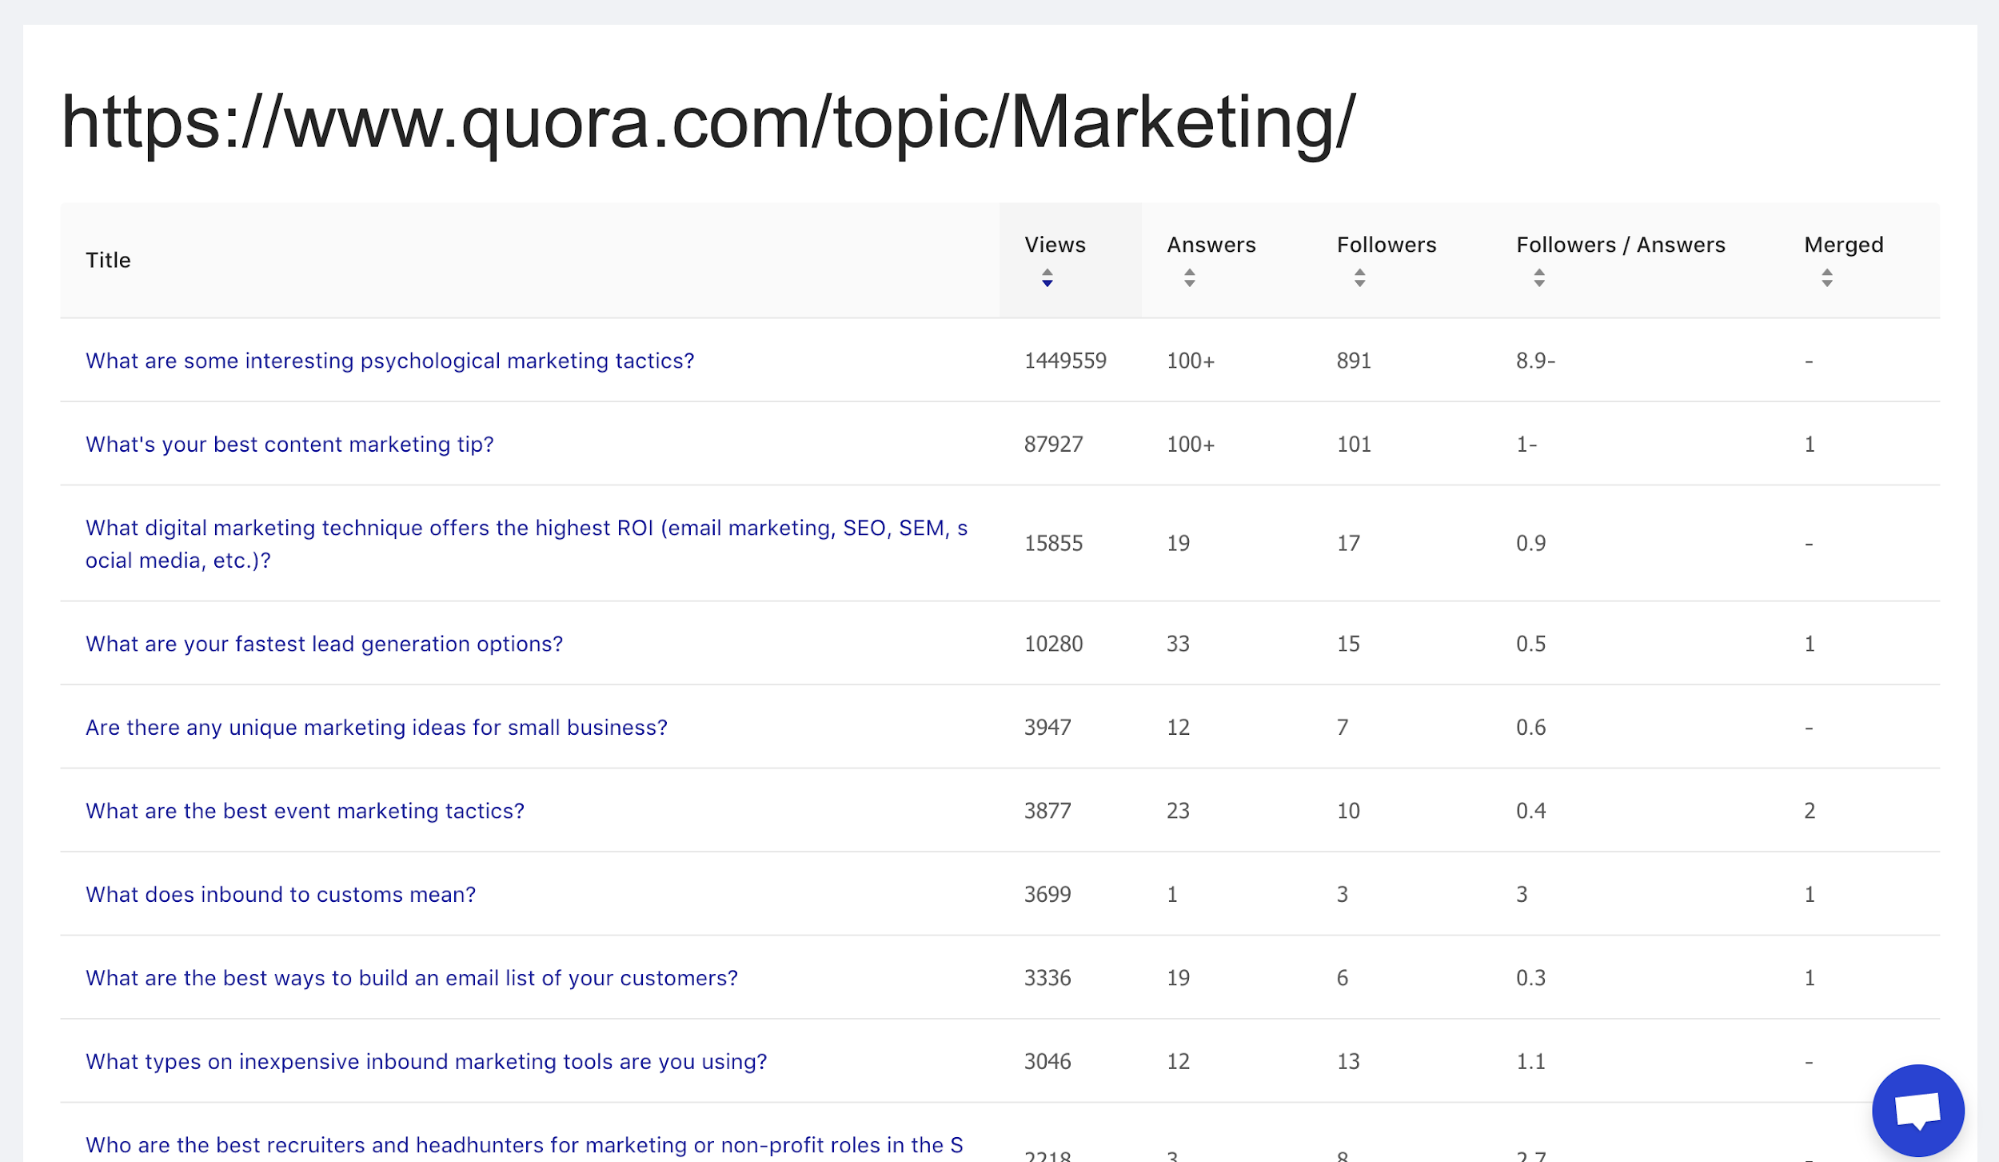 findbetterquestions - the tool for quora marketing